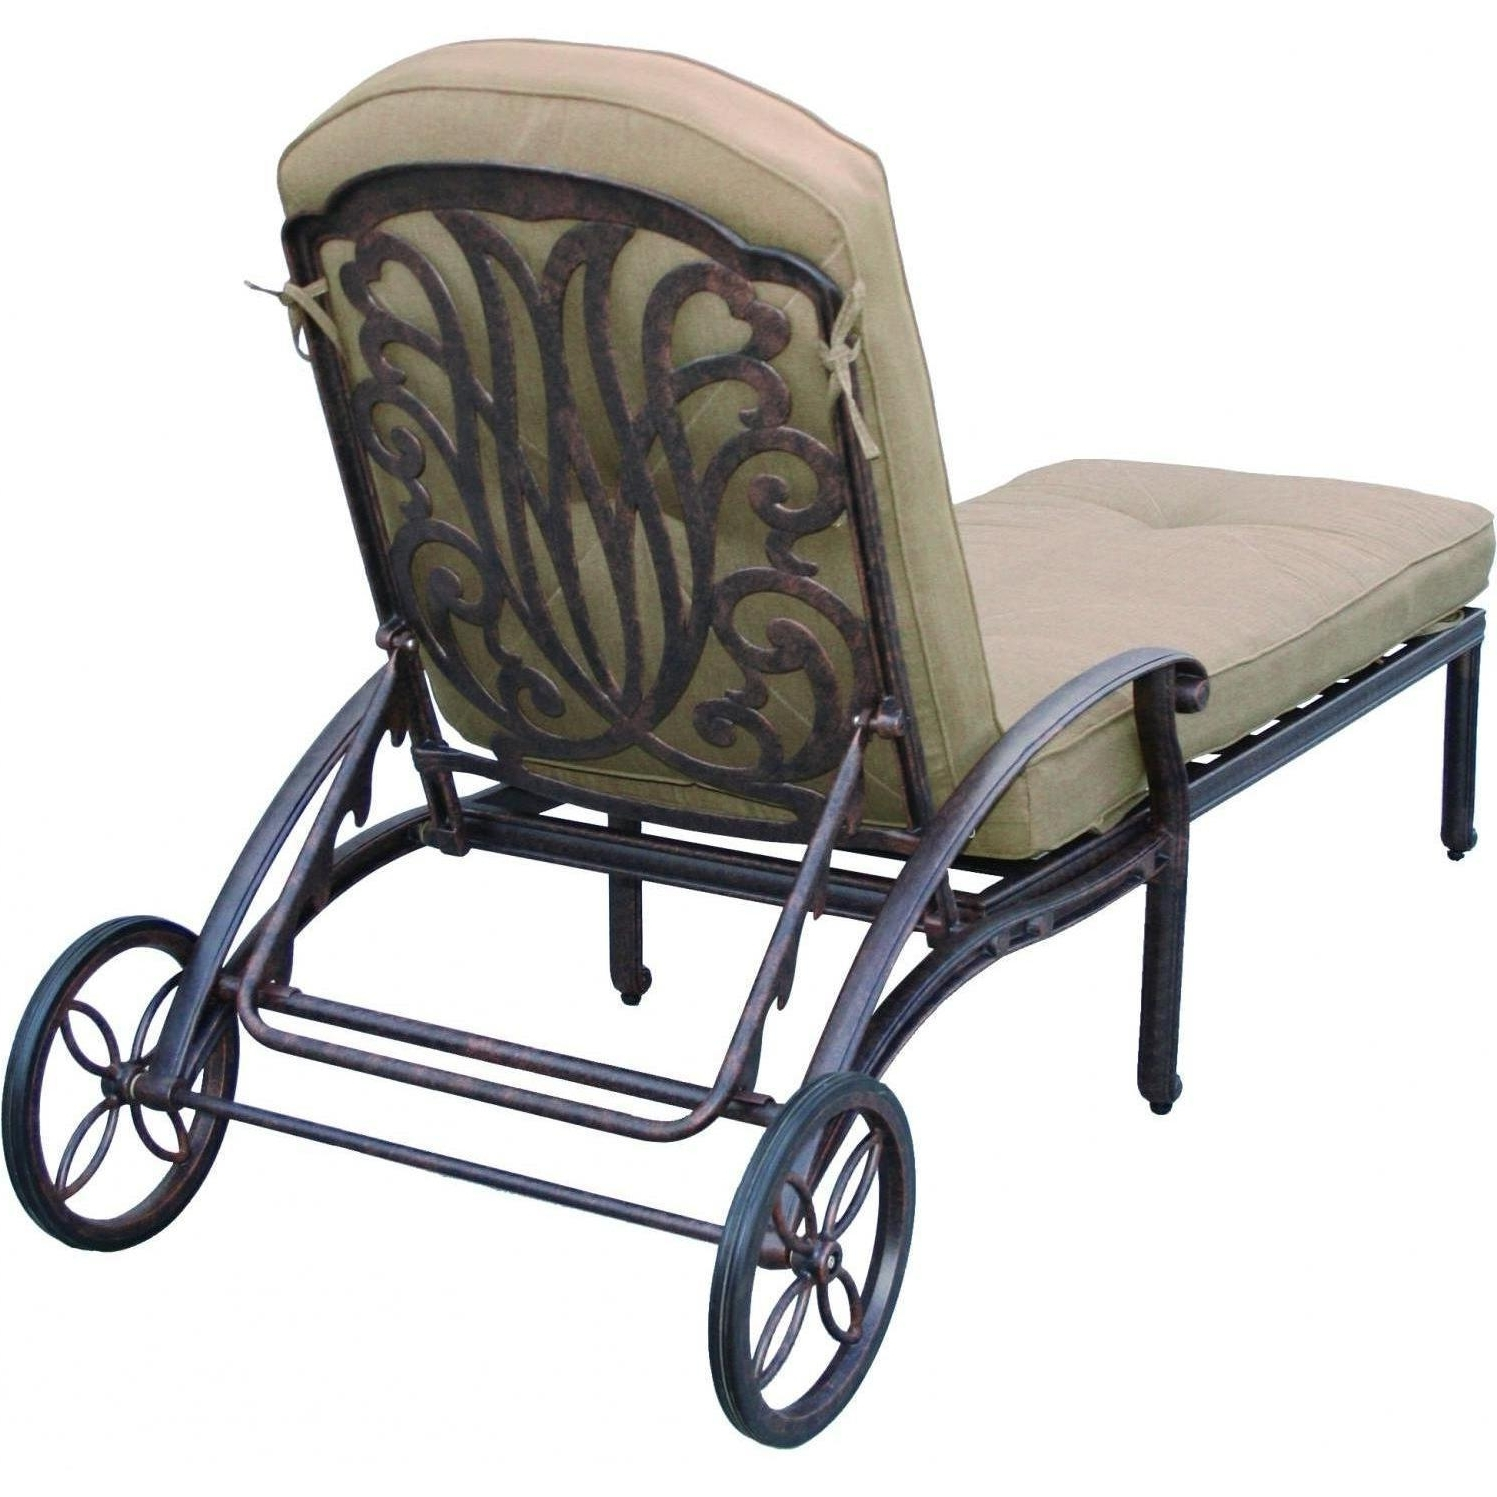 Cast Aluminum Chaise Lounges With Wheels With Regard To Most Up To Date Darlee Elisabeth Cast Aluminum Patio Chaise Lounge : Ultimate Patio (View 11 of 15)